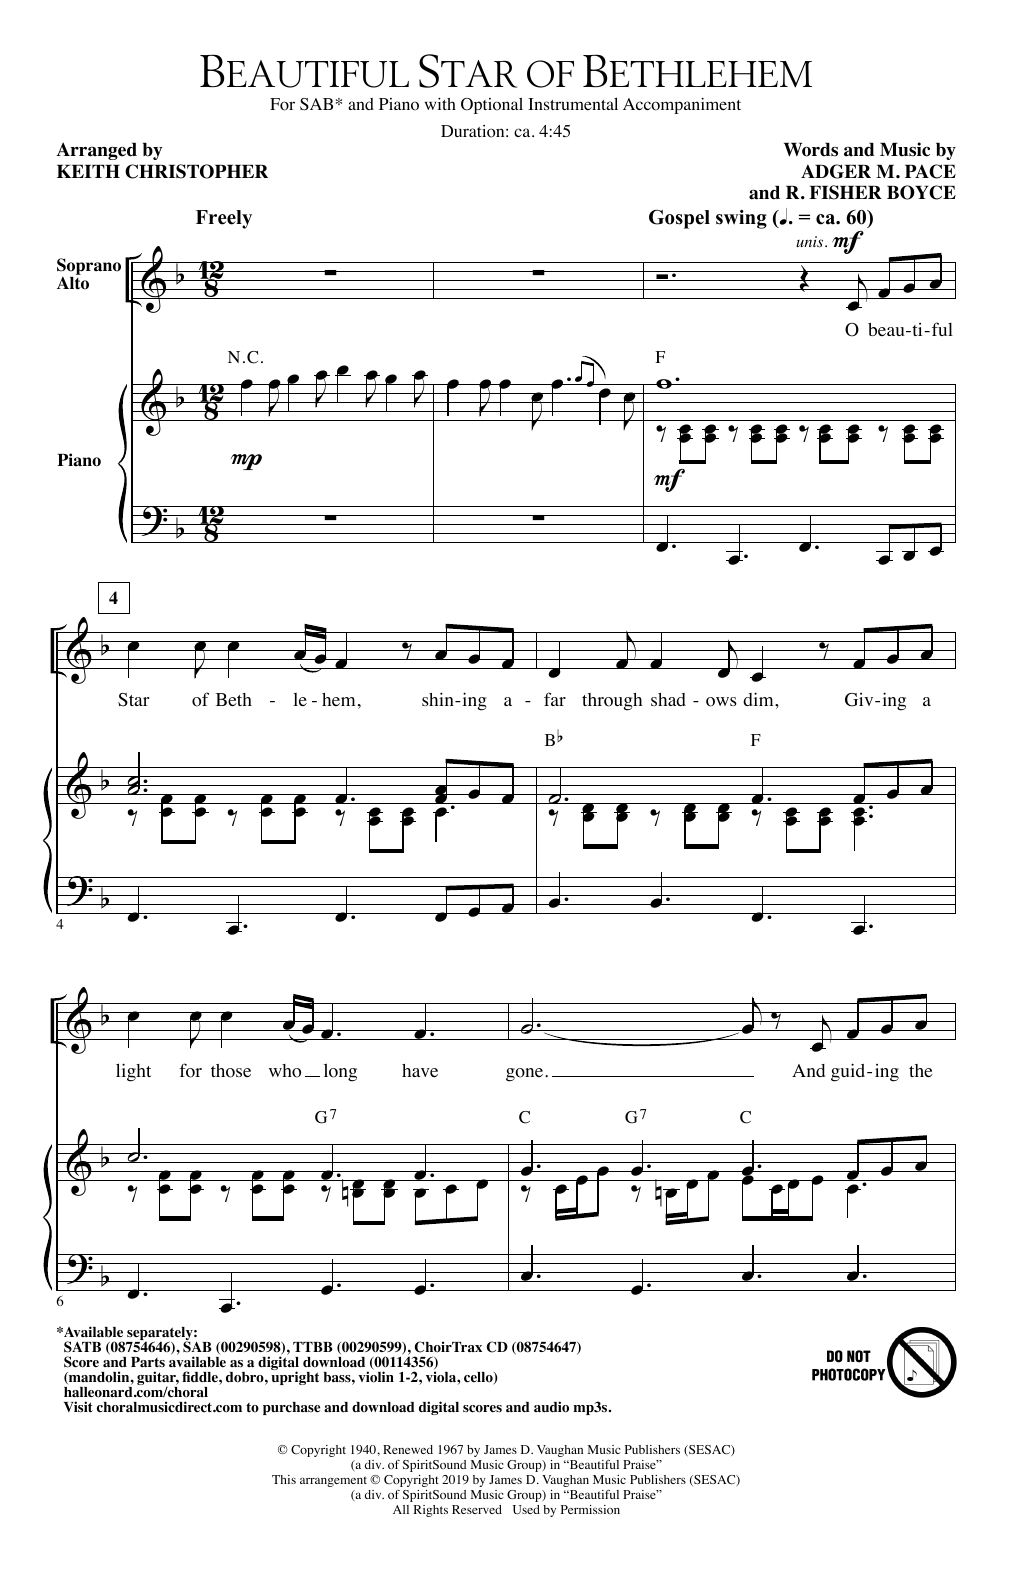 Download Adger M. Pace and R. Fisher Boyce 'Beautiful Star Of Bethlehem (arr. Keith Christopher)' Digital Sheet Music Notes & Chords and start playing in minutes